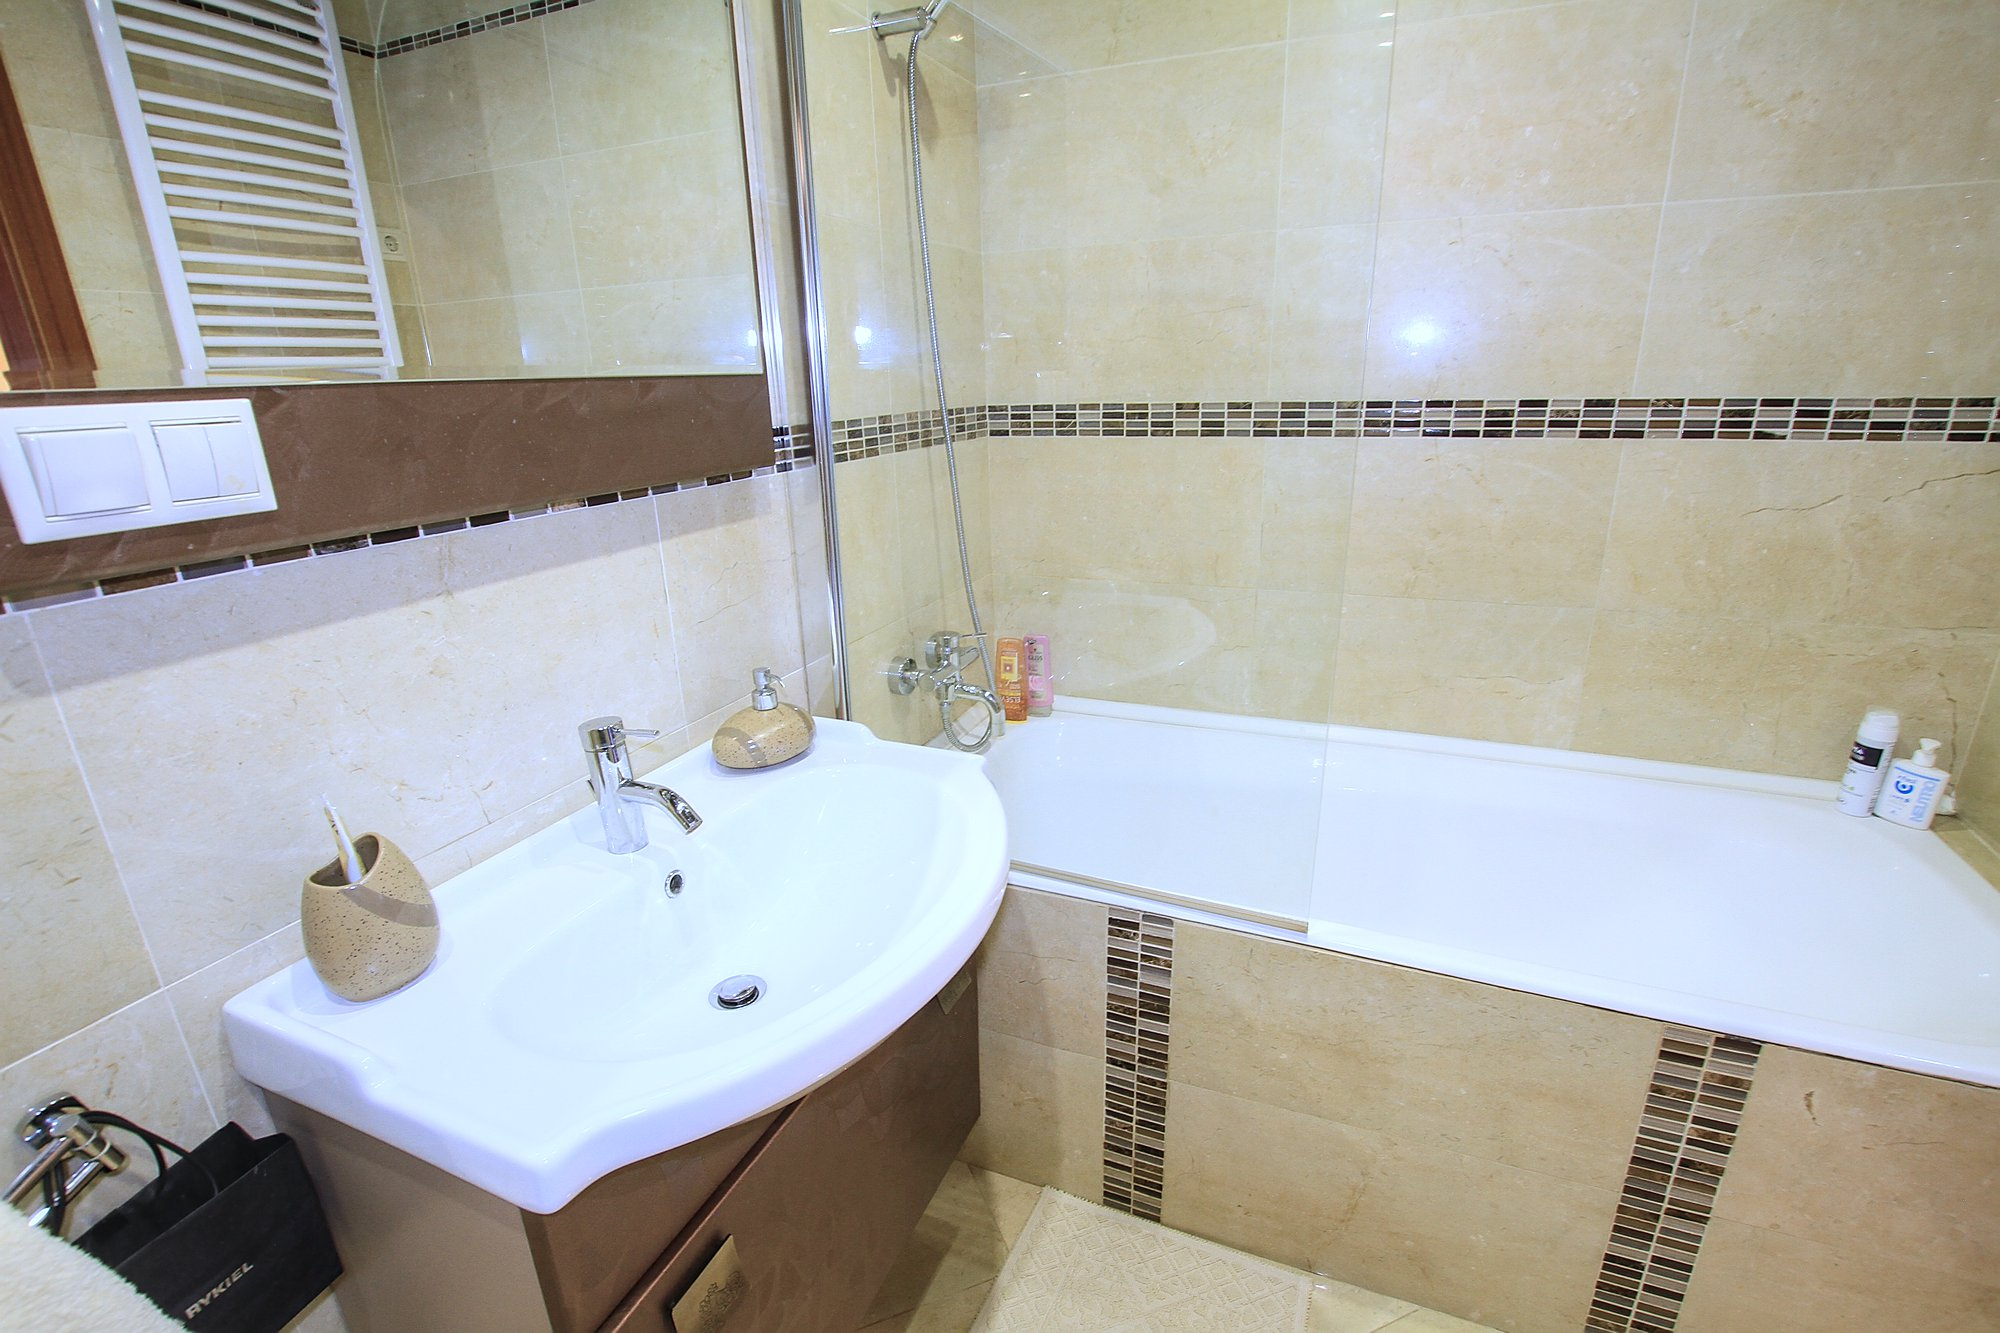 A-40-3-room-apartment-for-rent-in-Chisinau-Botanica_07.jpg